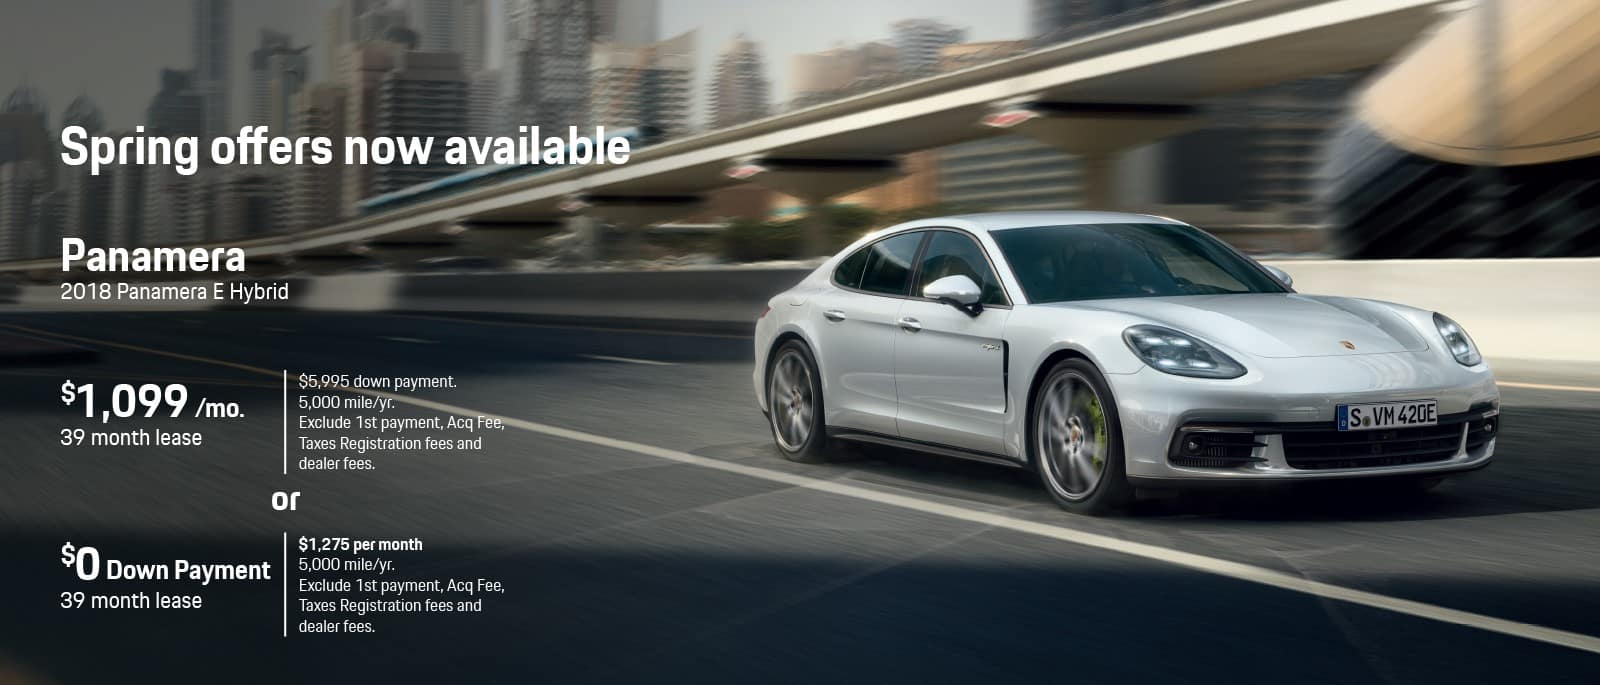 2018 Panamera Spring Offer